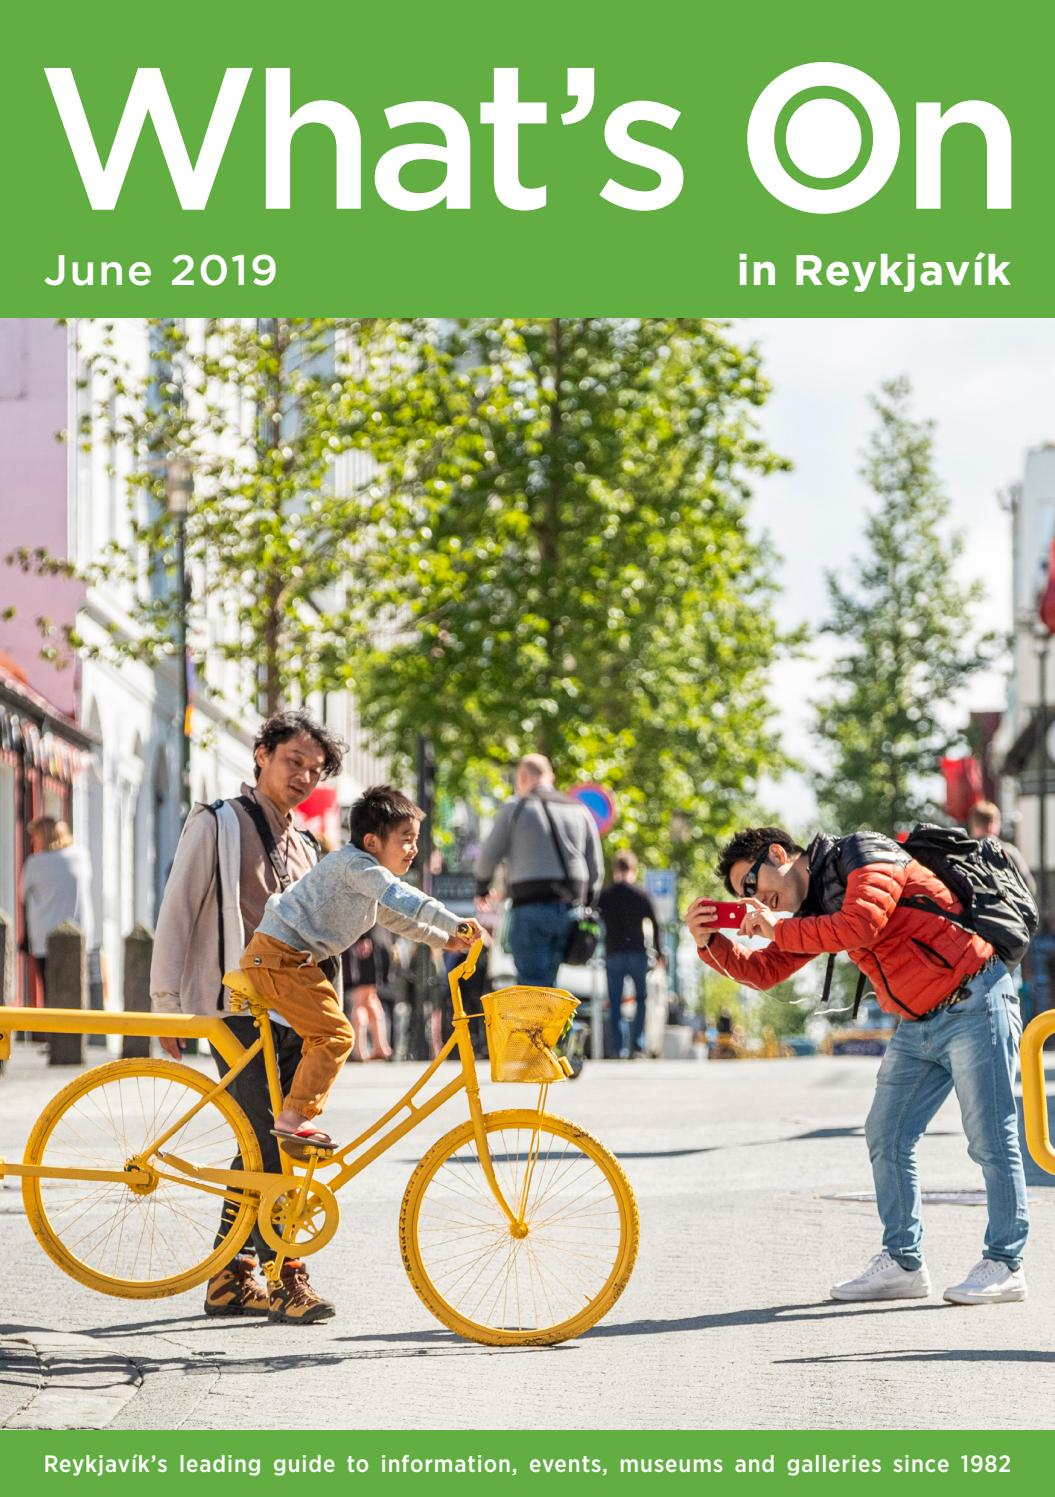 What's On - June 2019 by MD Reykjavik - issuu